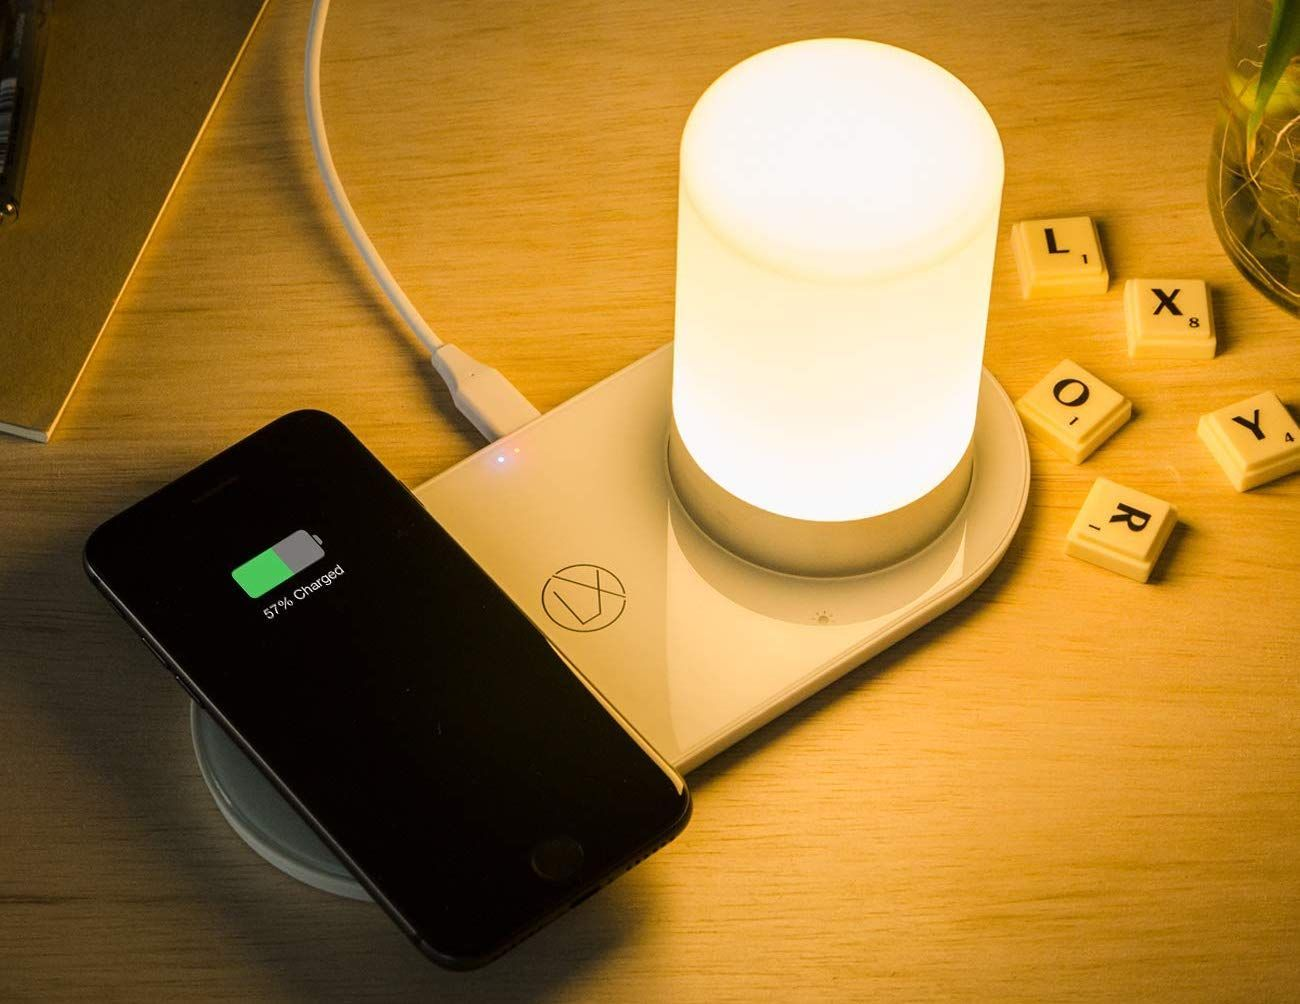 Lxory Wireless Charging Lamp Provides Power And Light Wireless Charging Lamp Mood Lamps Wireless Charging Pad